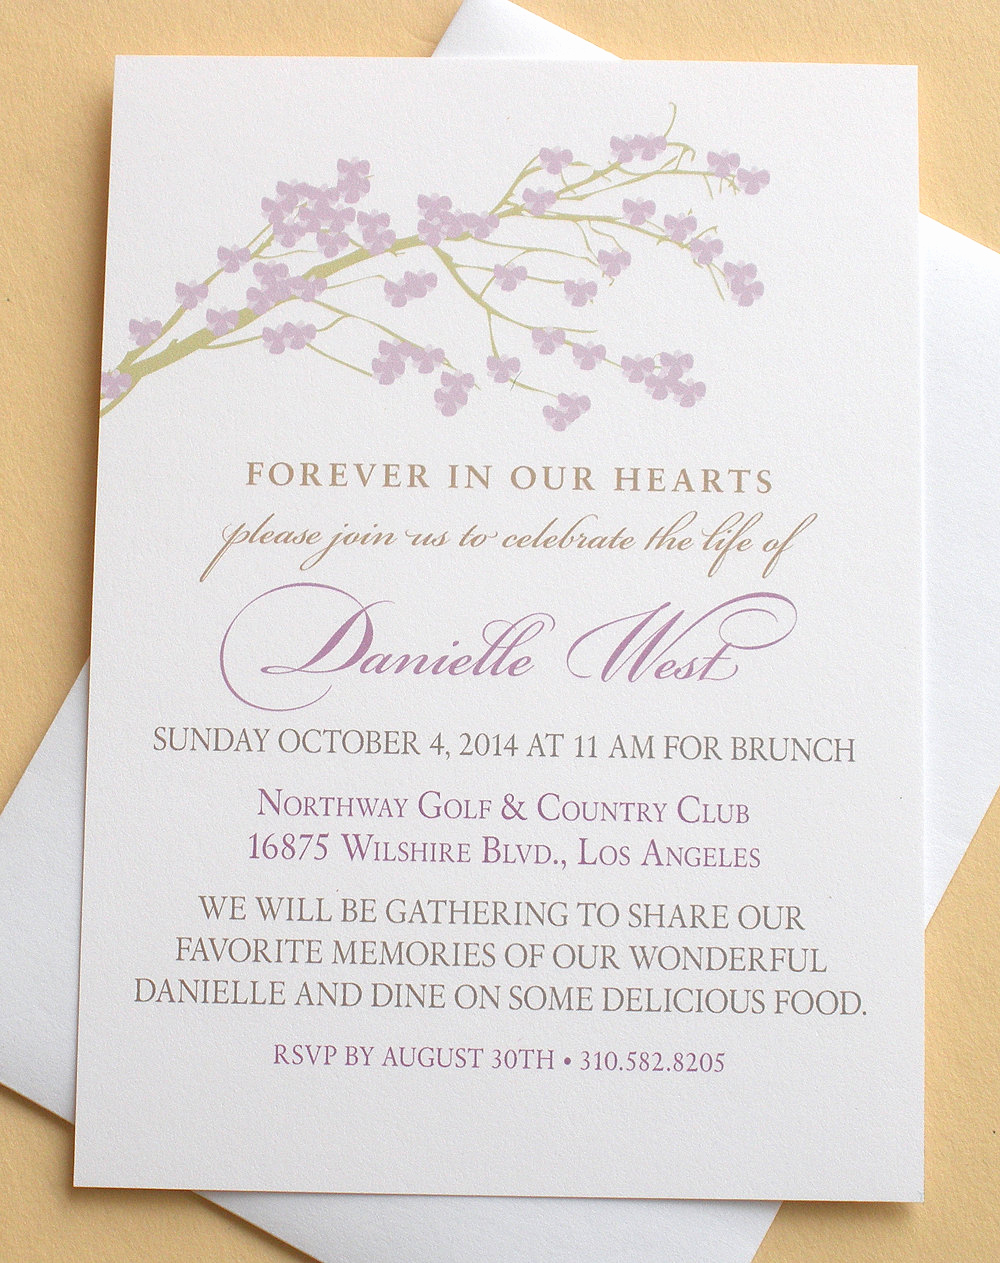 Celebration Of Life Invitation Ideas Beautiful Celebration Of Life Invitations with A Branch Of by